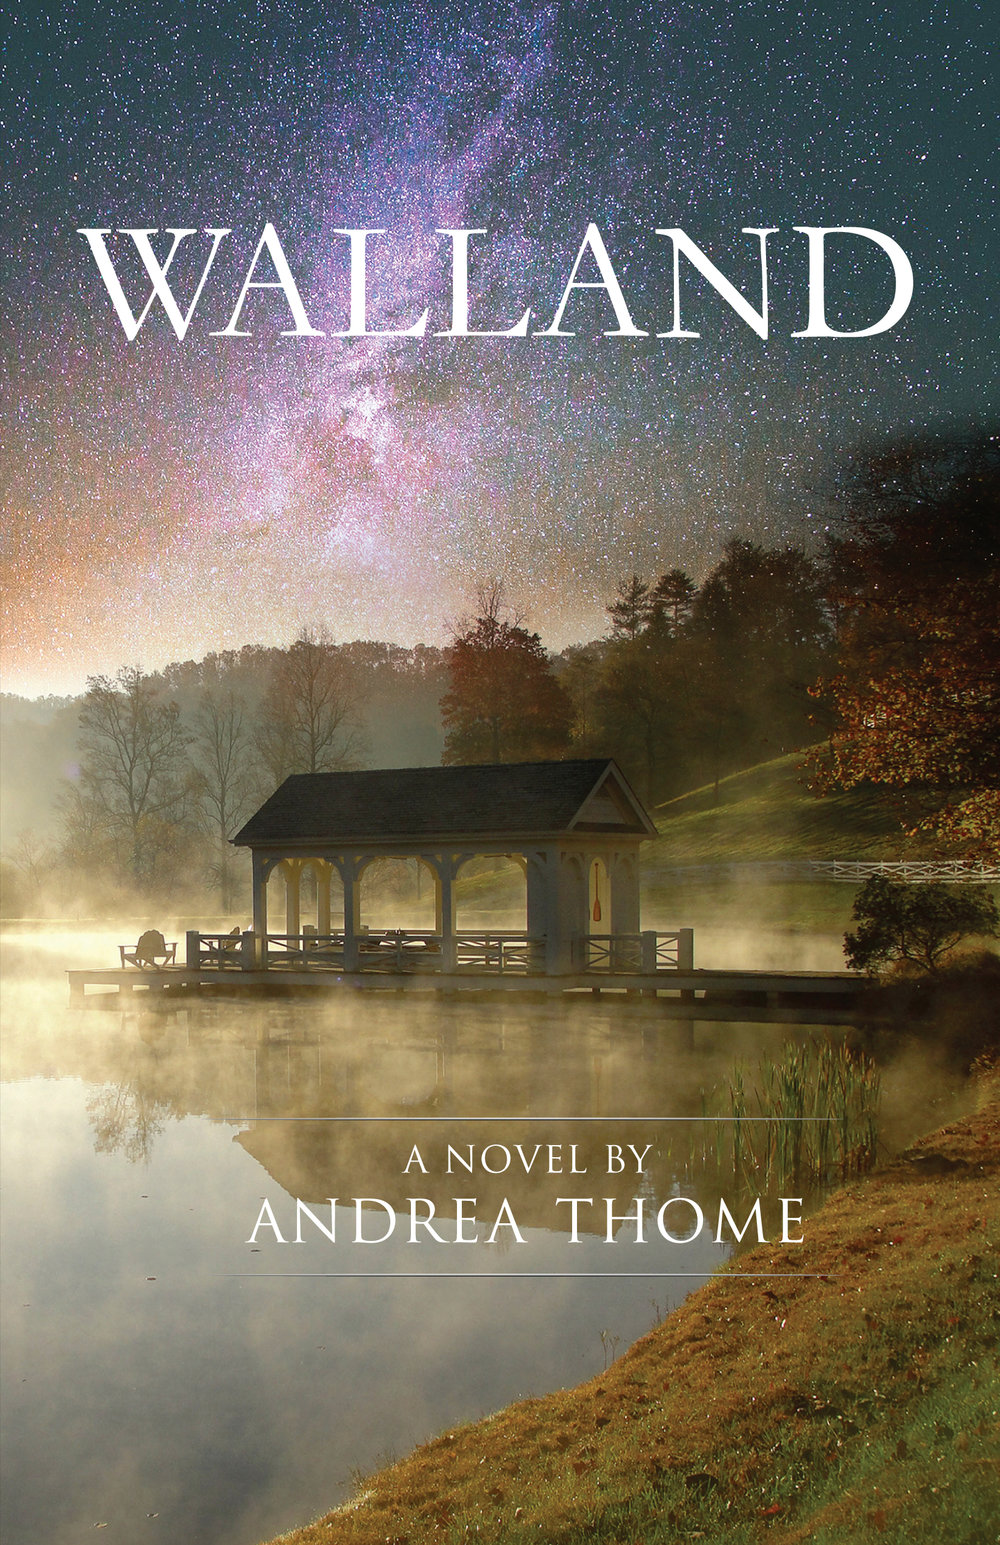 walland by andrea thome.jpg